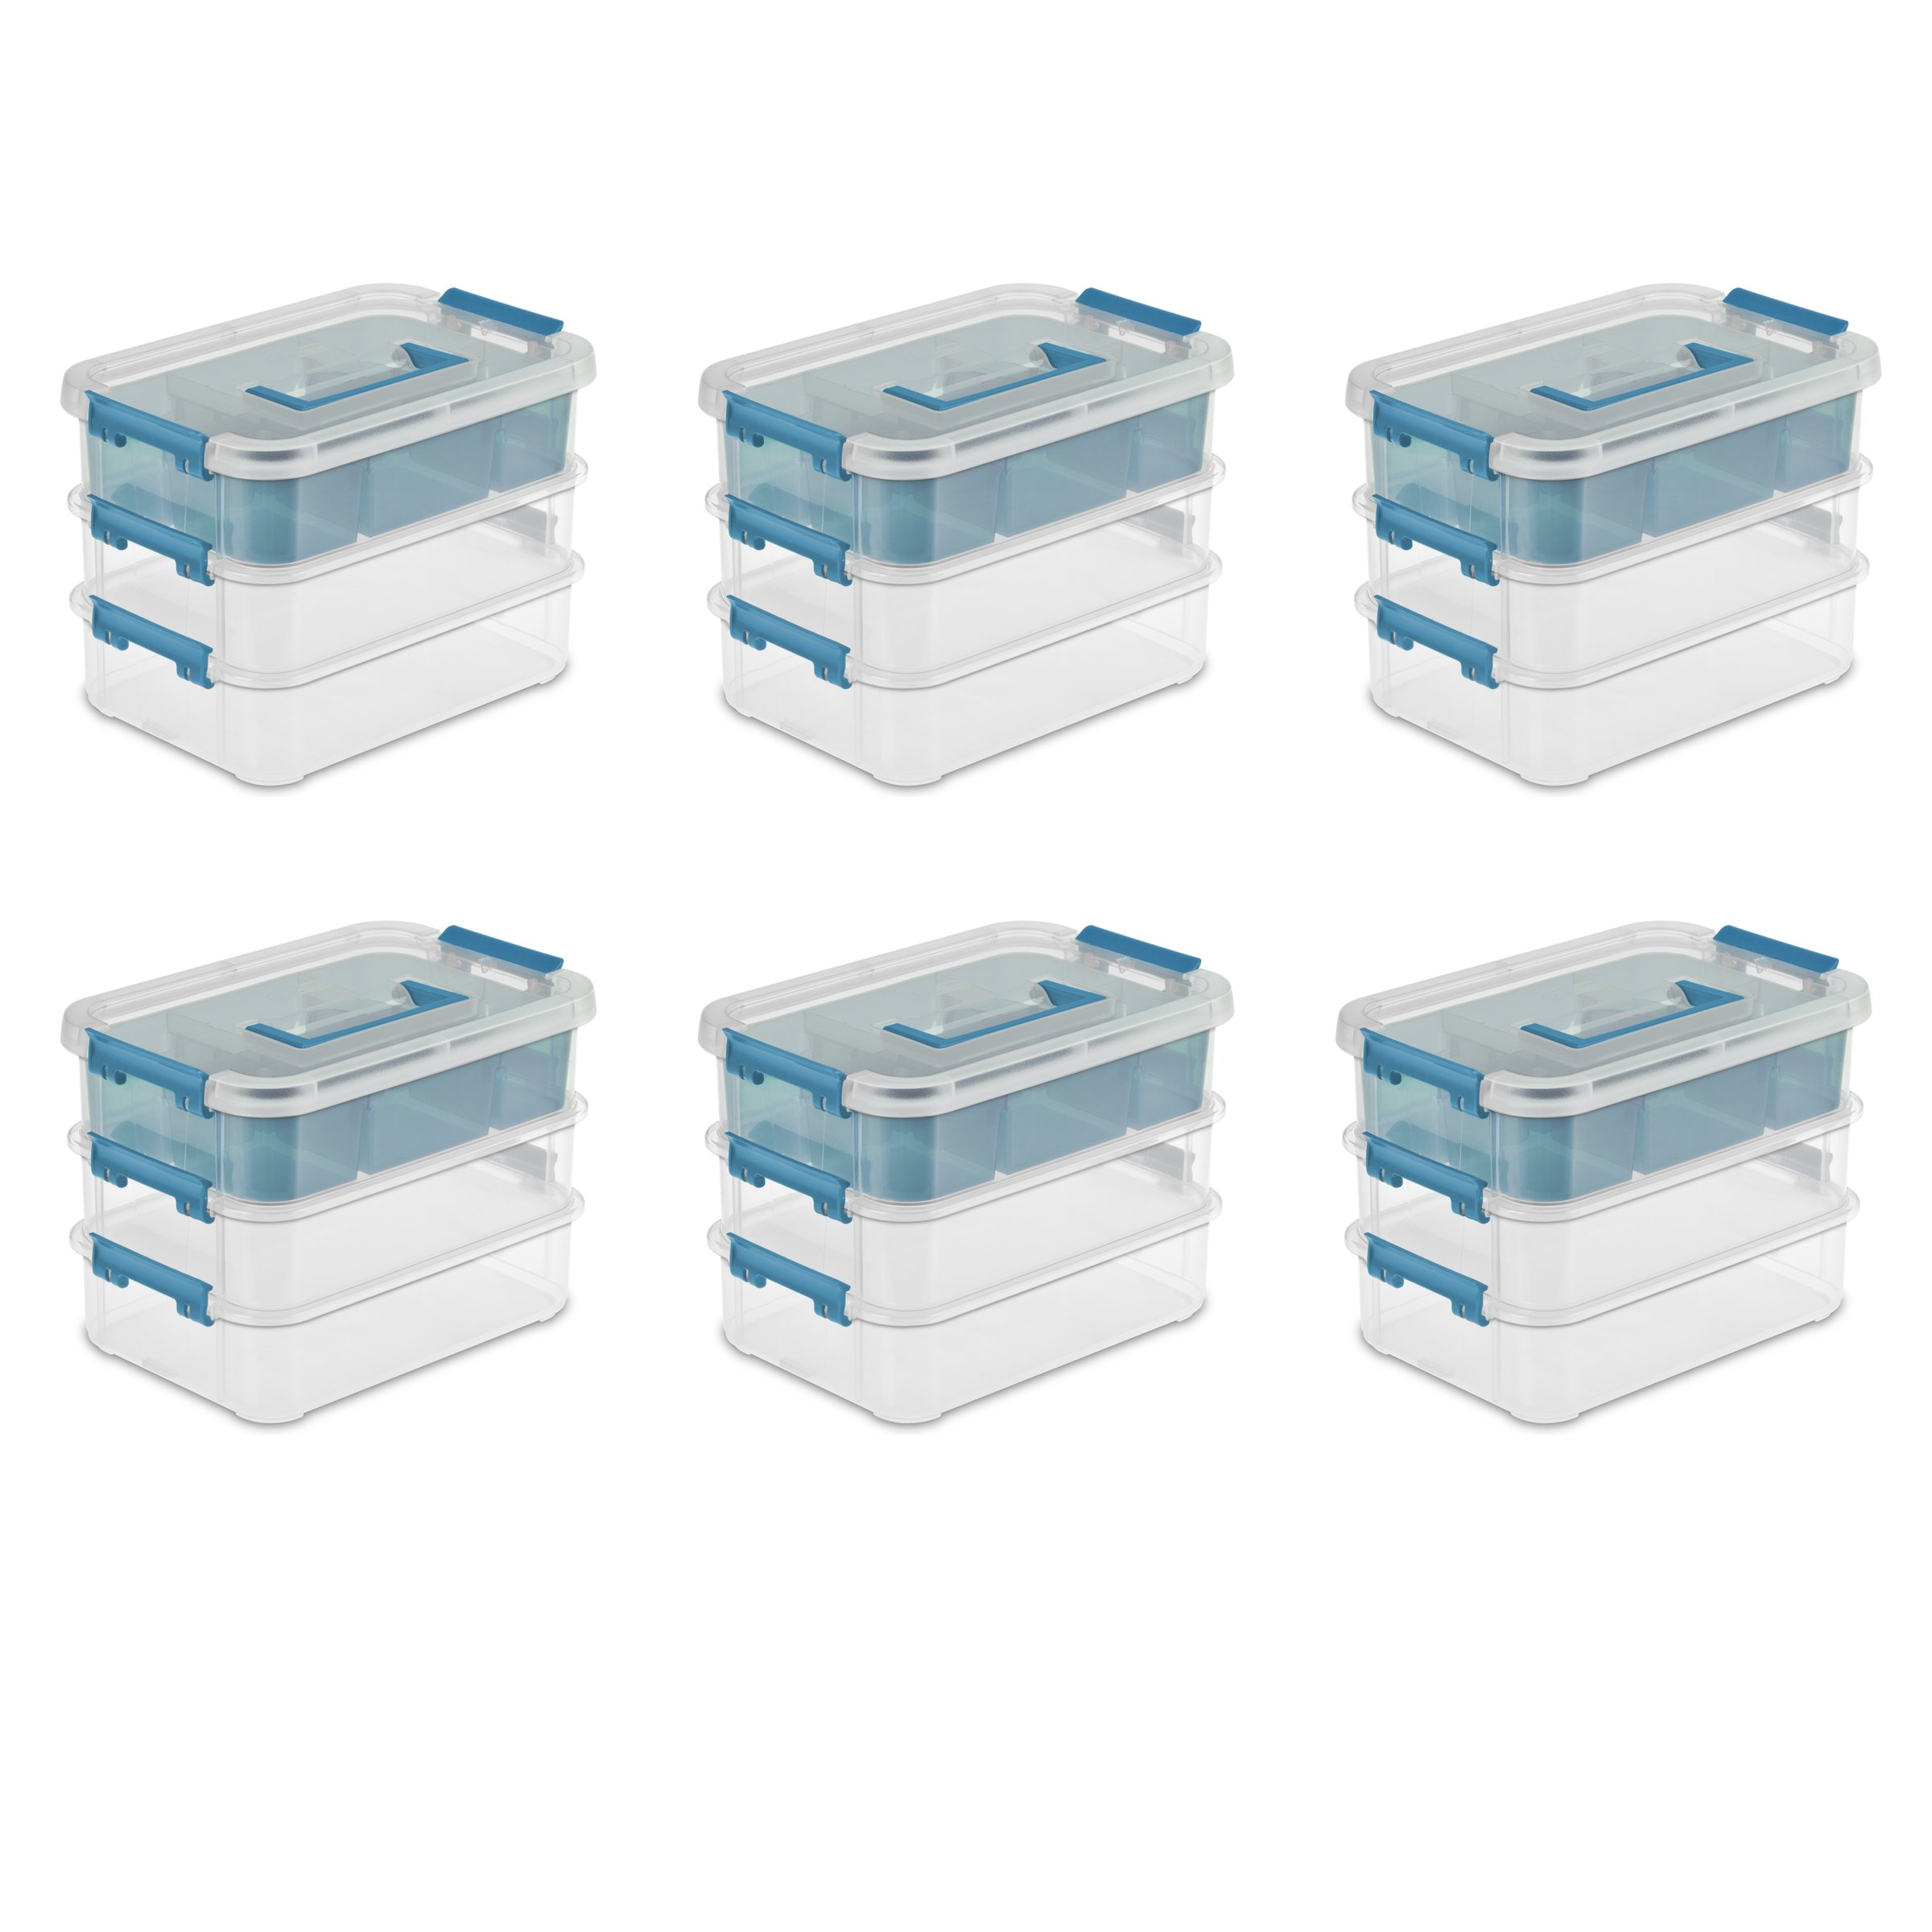 Sterilite 14138606 Stack & Carry 3 Layer Handle Box & Tray, Clear w/ Blue Aquarium Handle & Latches w/ Freshwater Tint Tray, 6-Pack